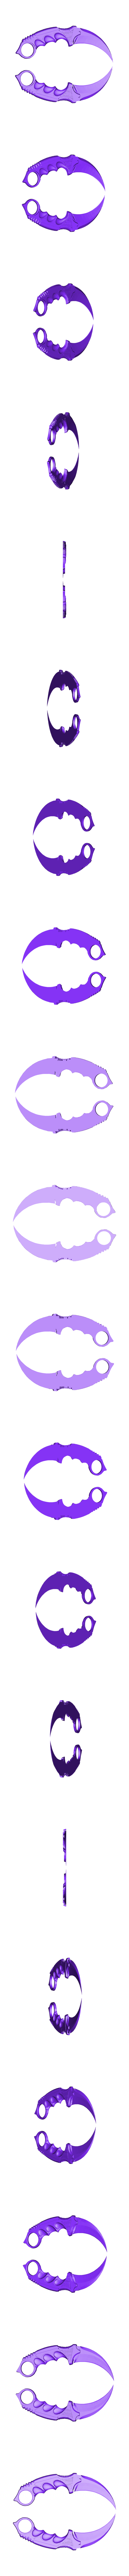 knife2.stl Download free STL file Karambit CS GO : Fixed + Keychain version • 3D printable object, Gophy